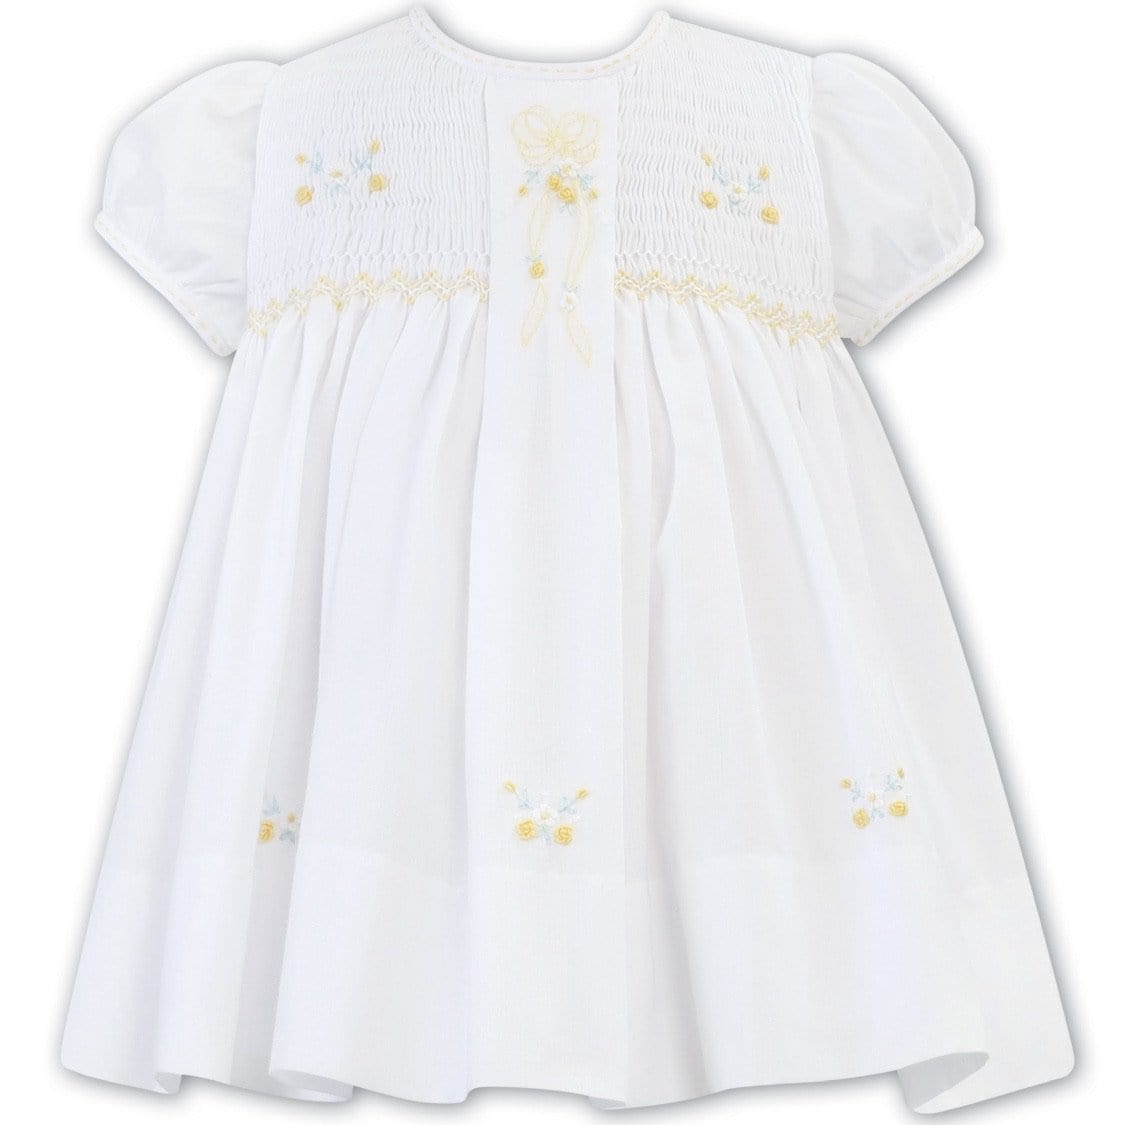 SARAH LOUISE WHITE / LEMON SMOCKED DRESS